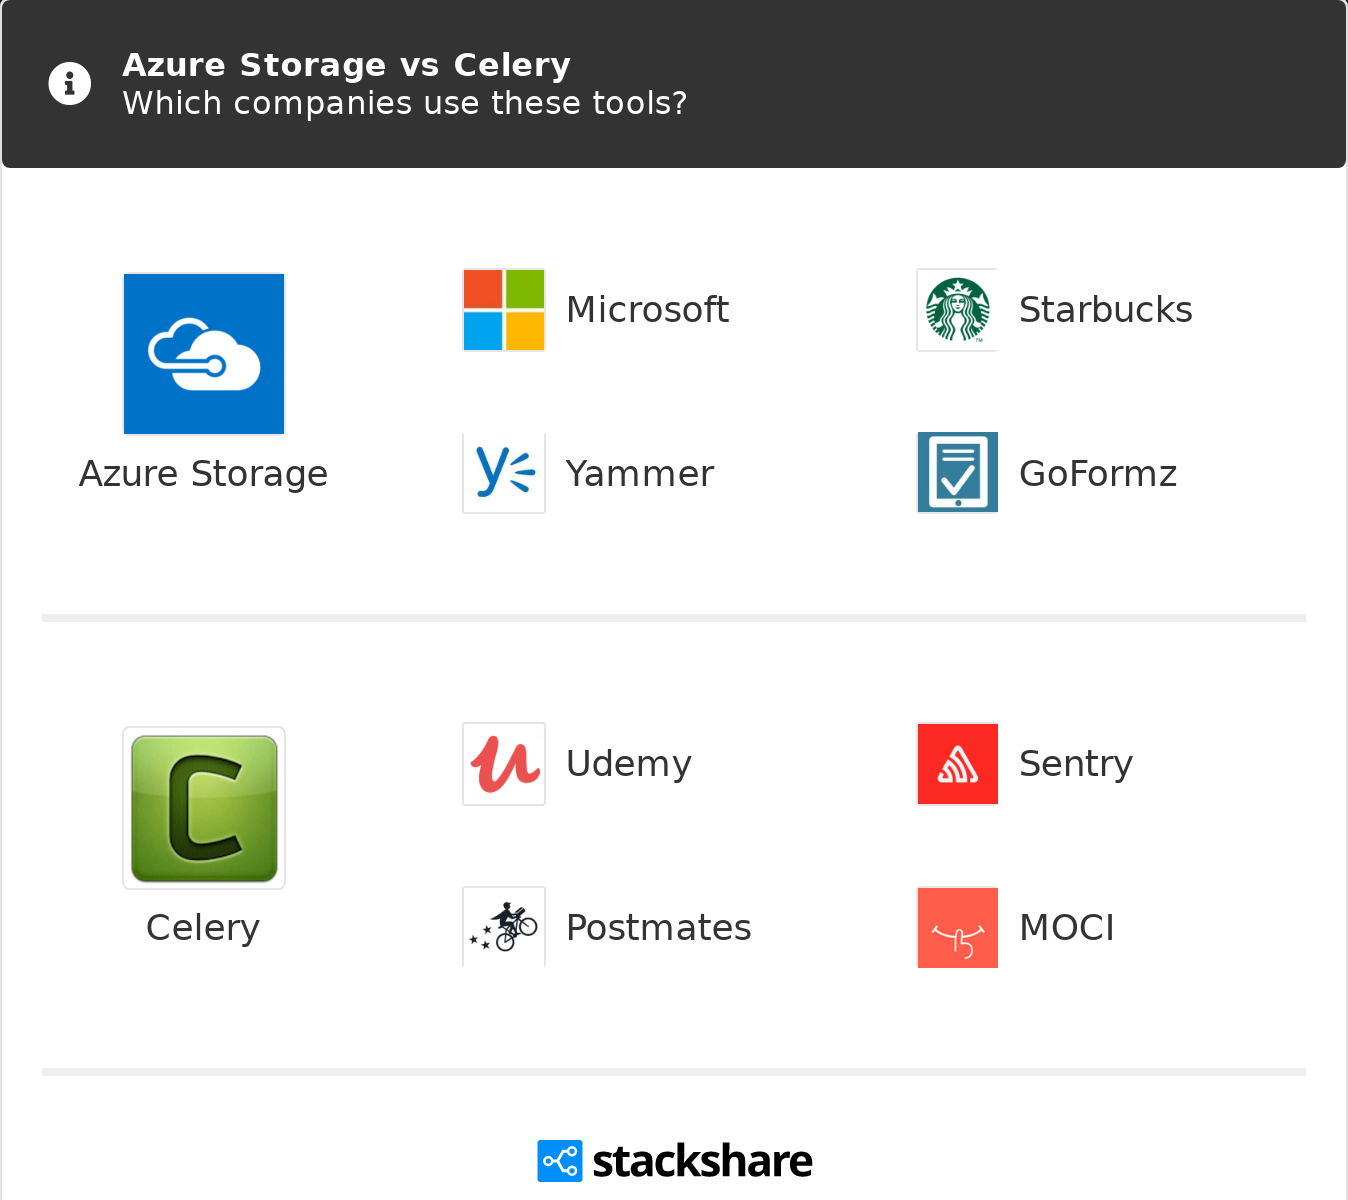 Azure Storage vs Celery   What are the differences?